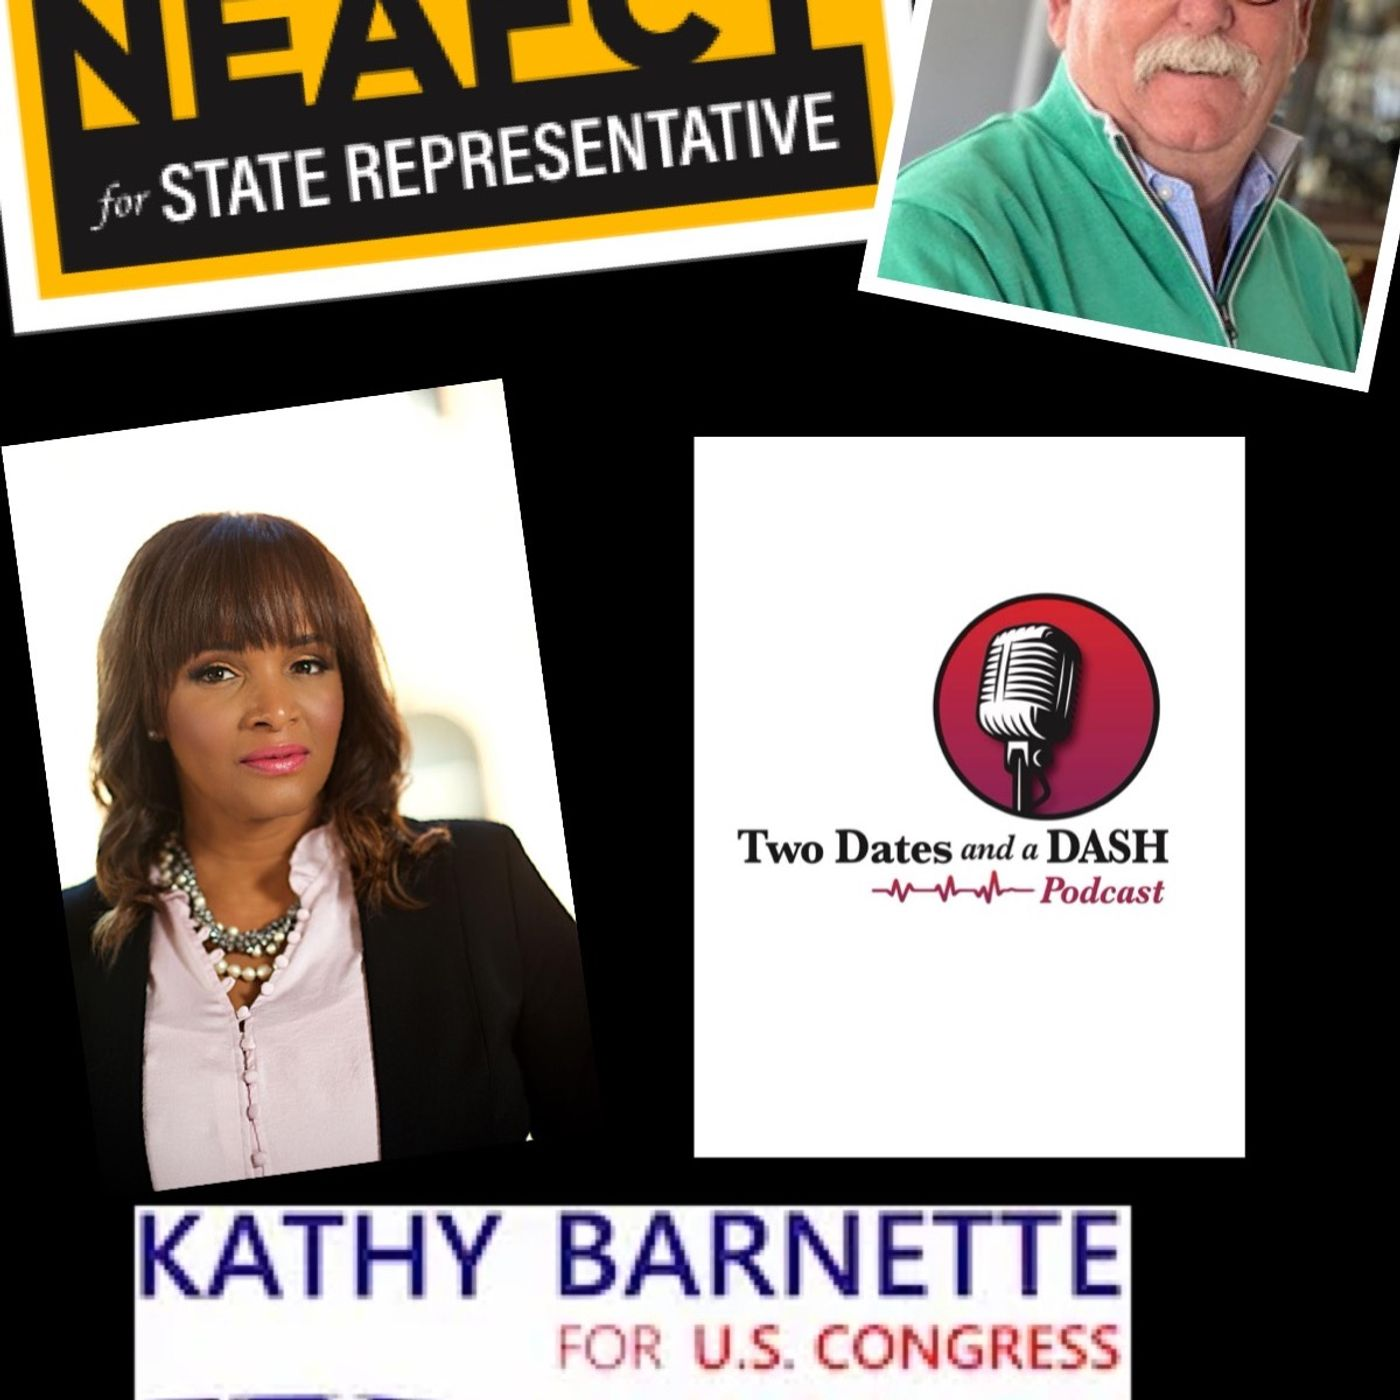 Two Dates and a Dash Podcast Episode 87: U.S. Congressional Candidate, Kathy Barnette and PA State Legislative Candidate, Tom Neafcy